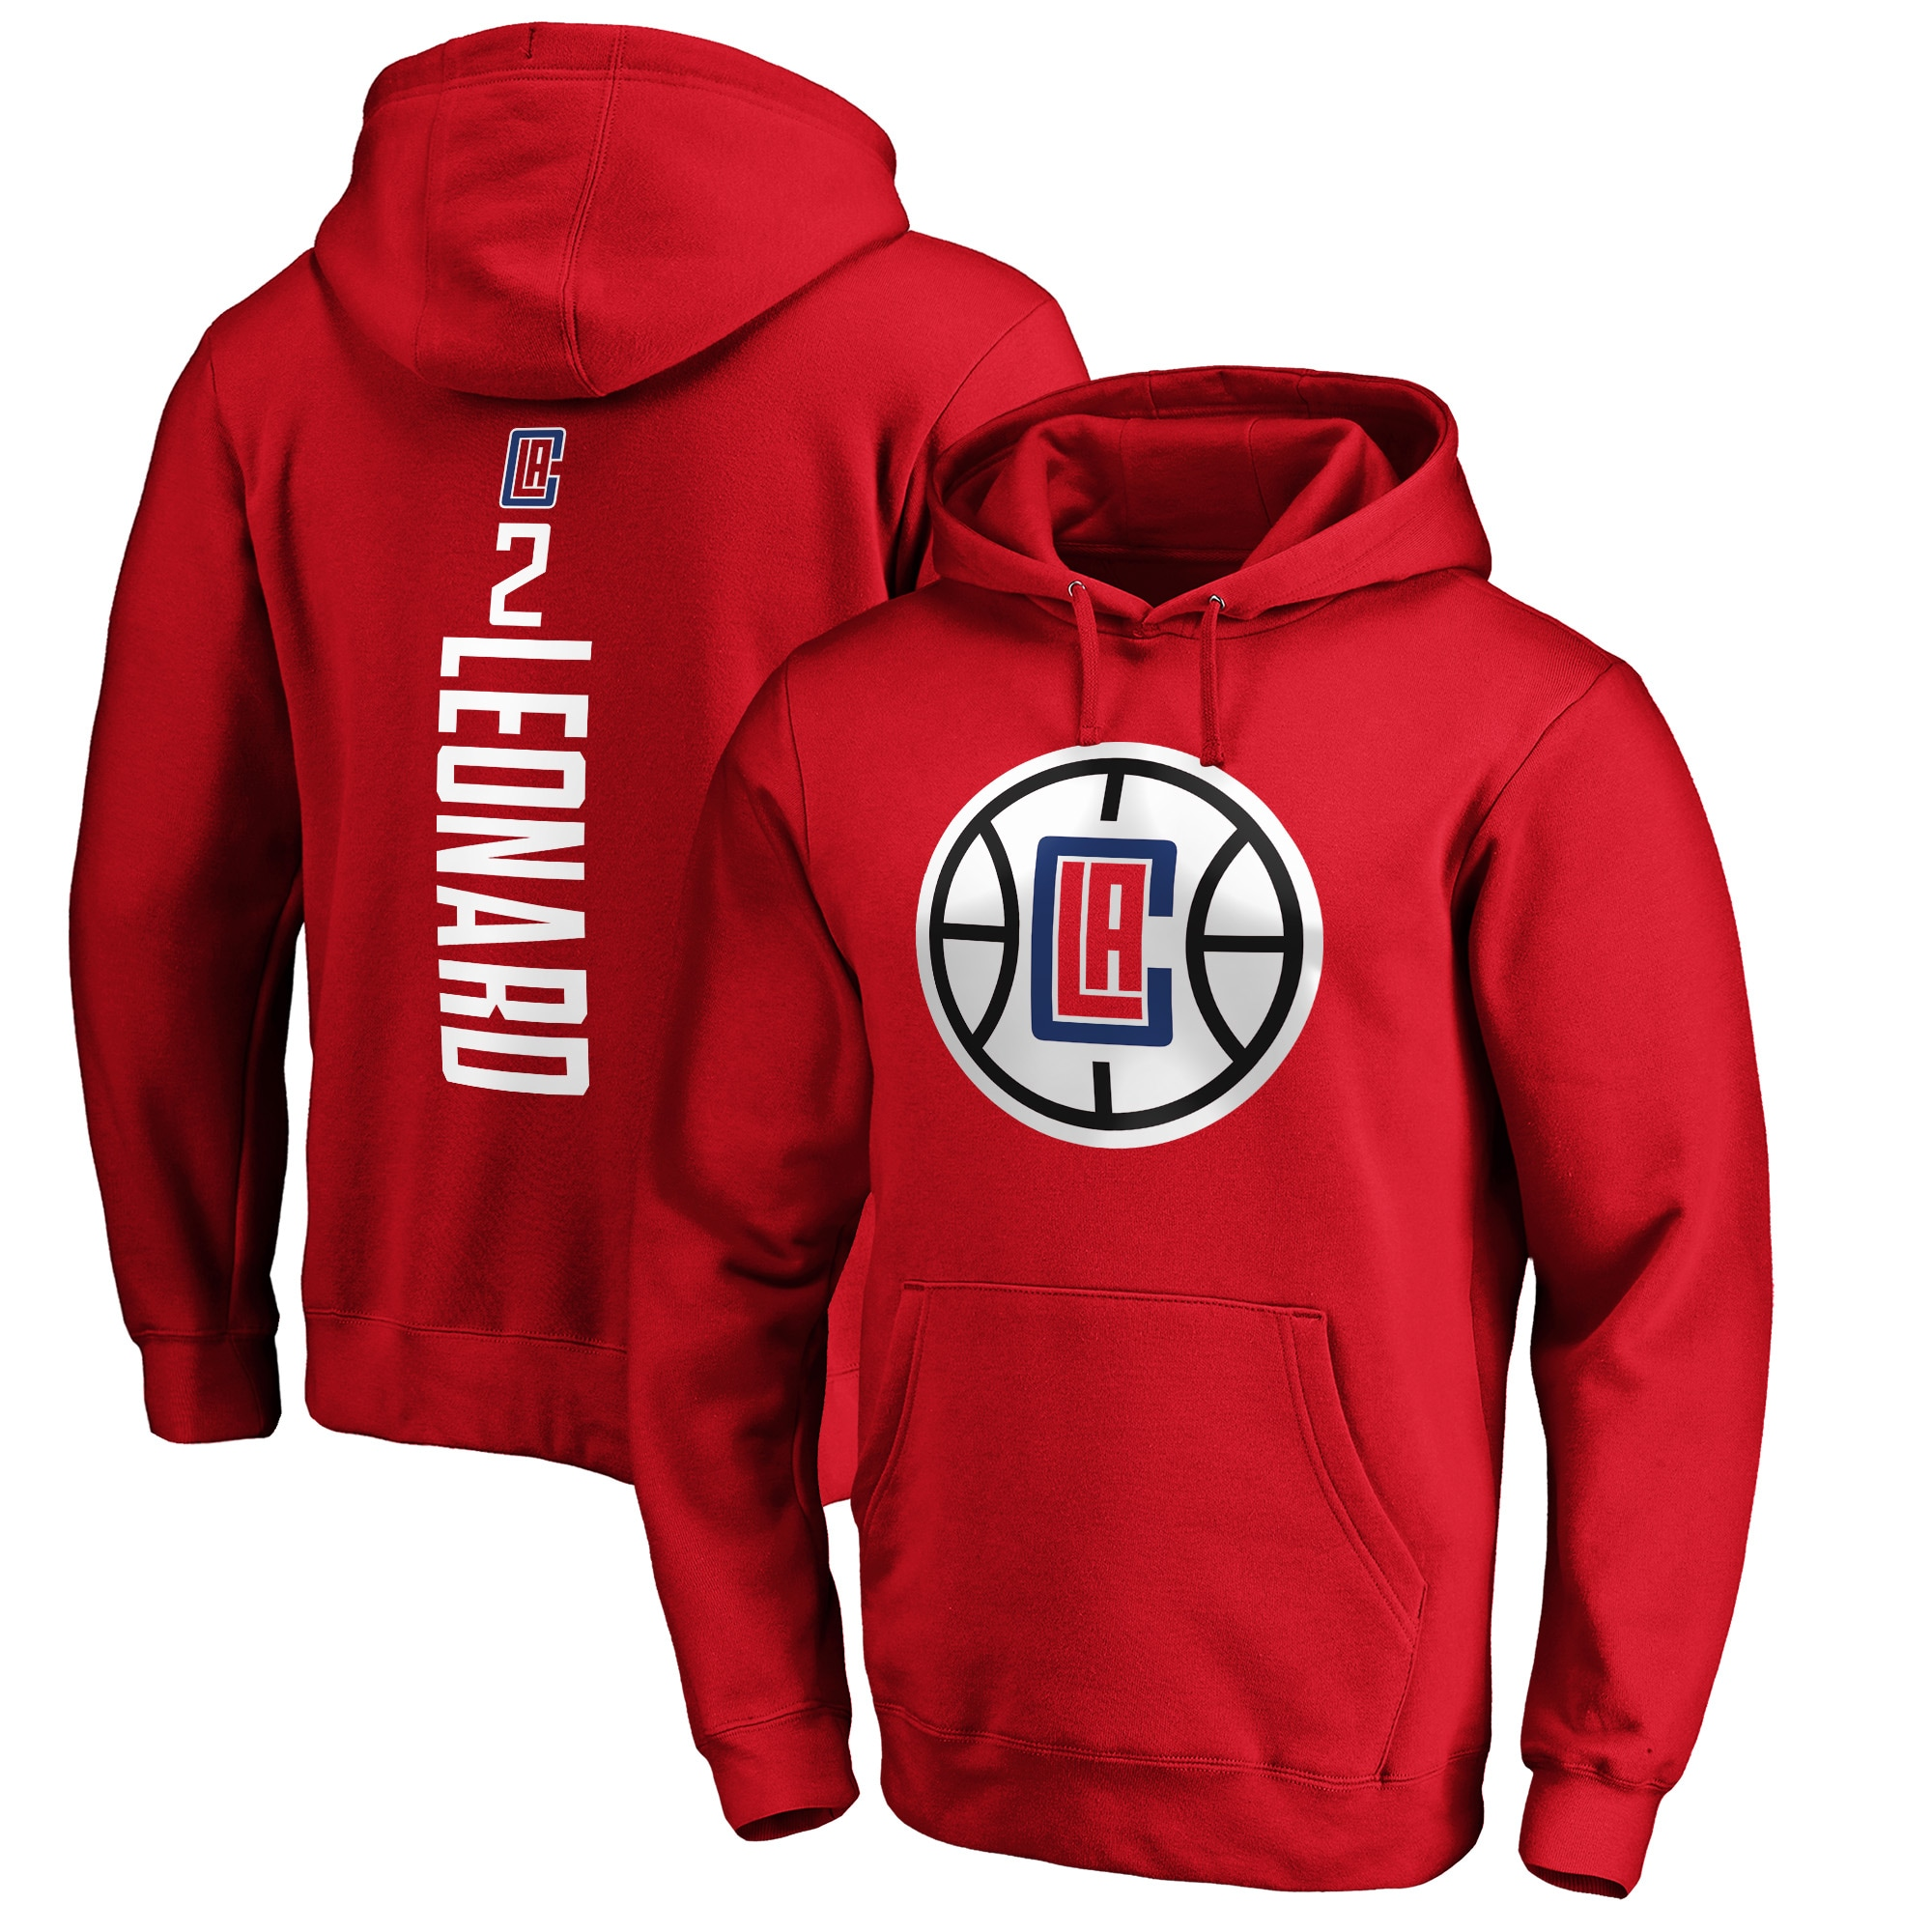 Kawhi Leonard LA Clippers Fanatics Branded Big & Tall Playmaker Name & Number Pullover Hoodie - Red